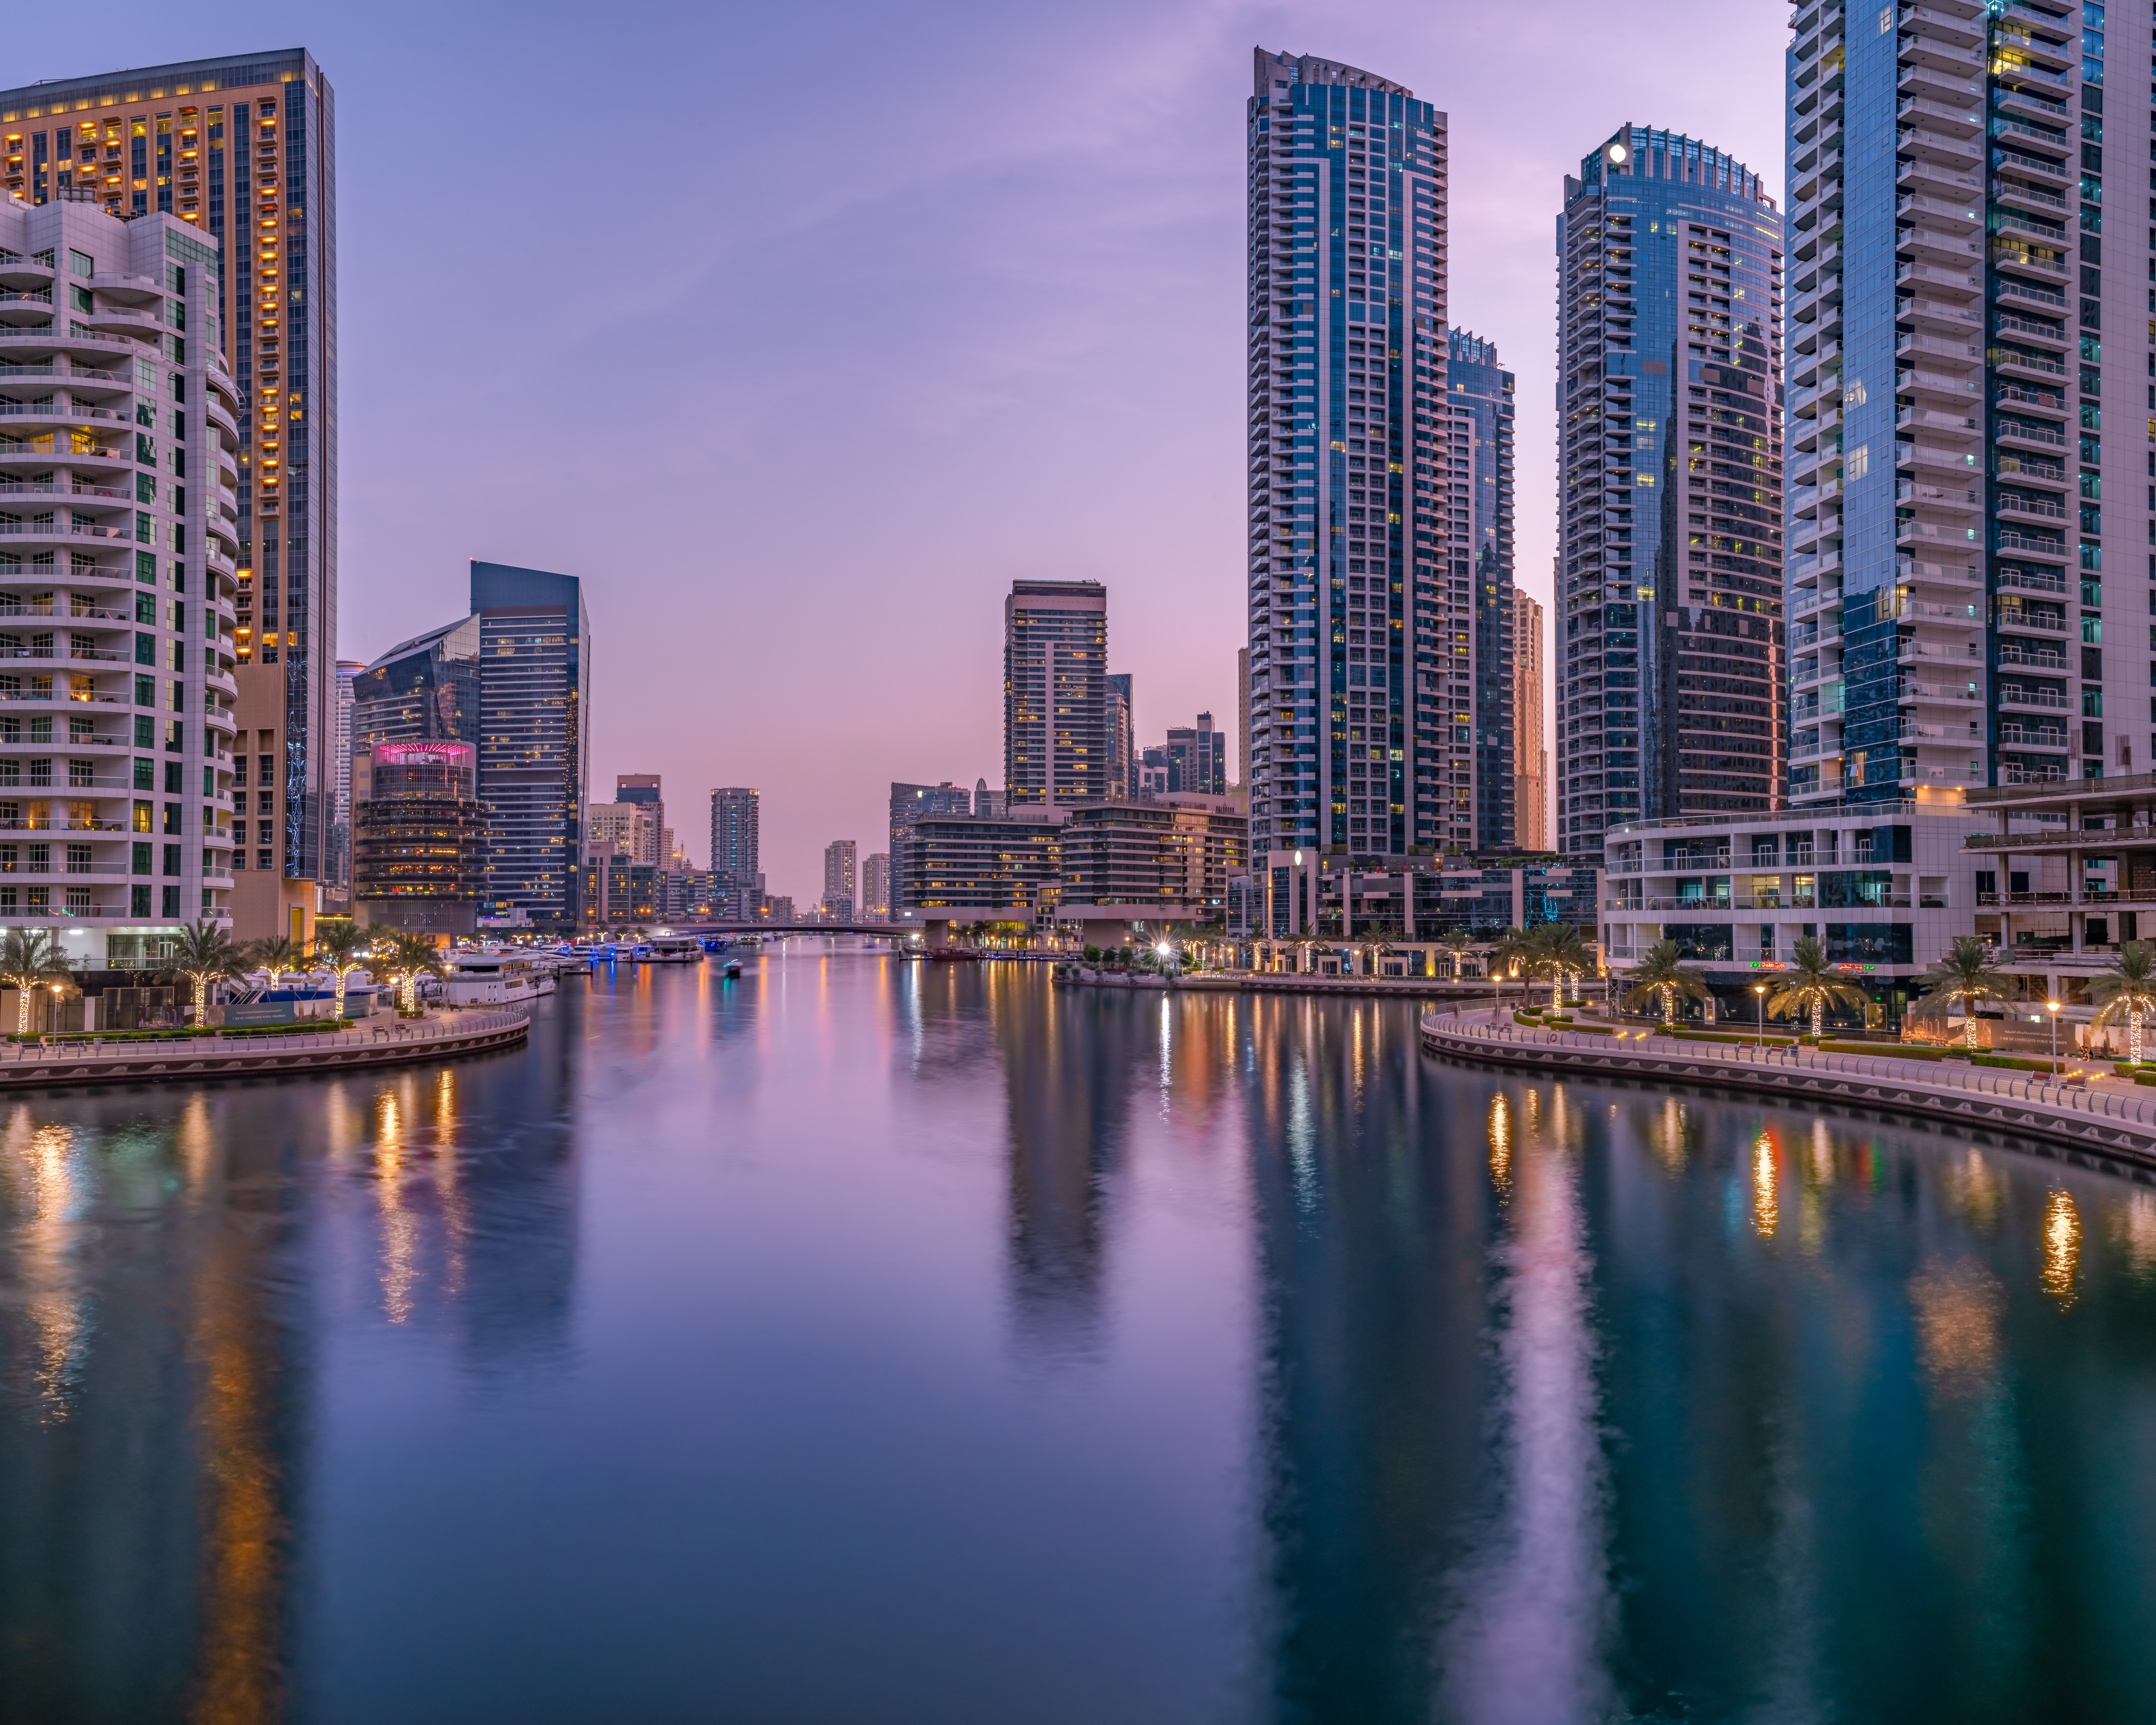 2. The marina during blue hour from the bridge